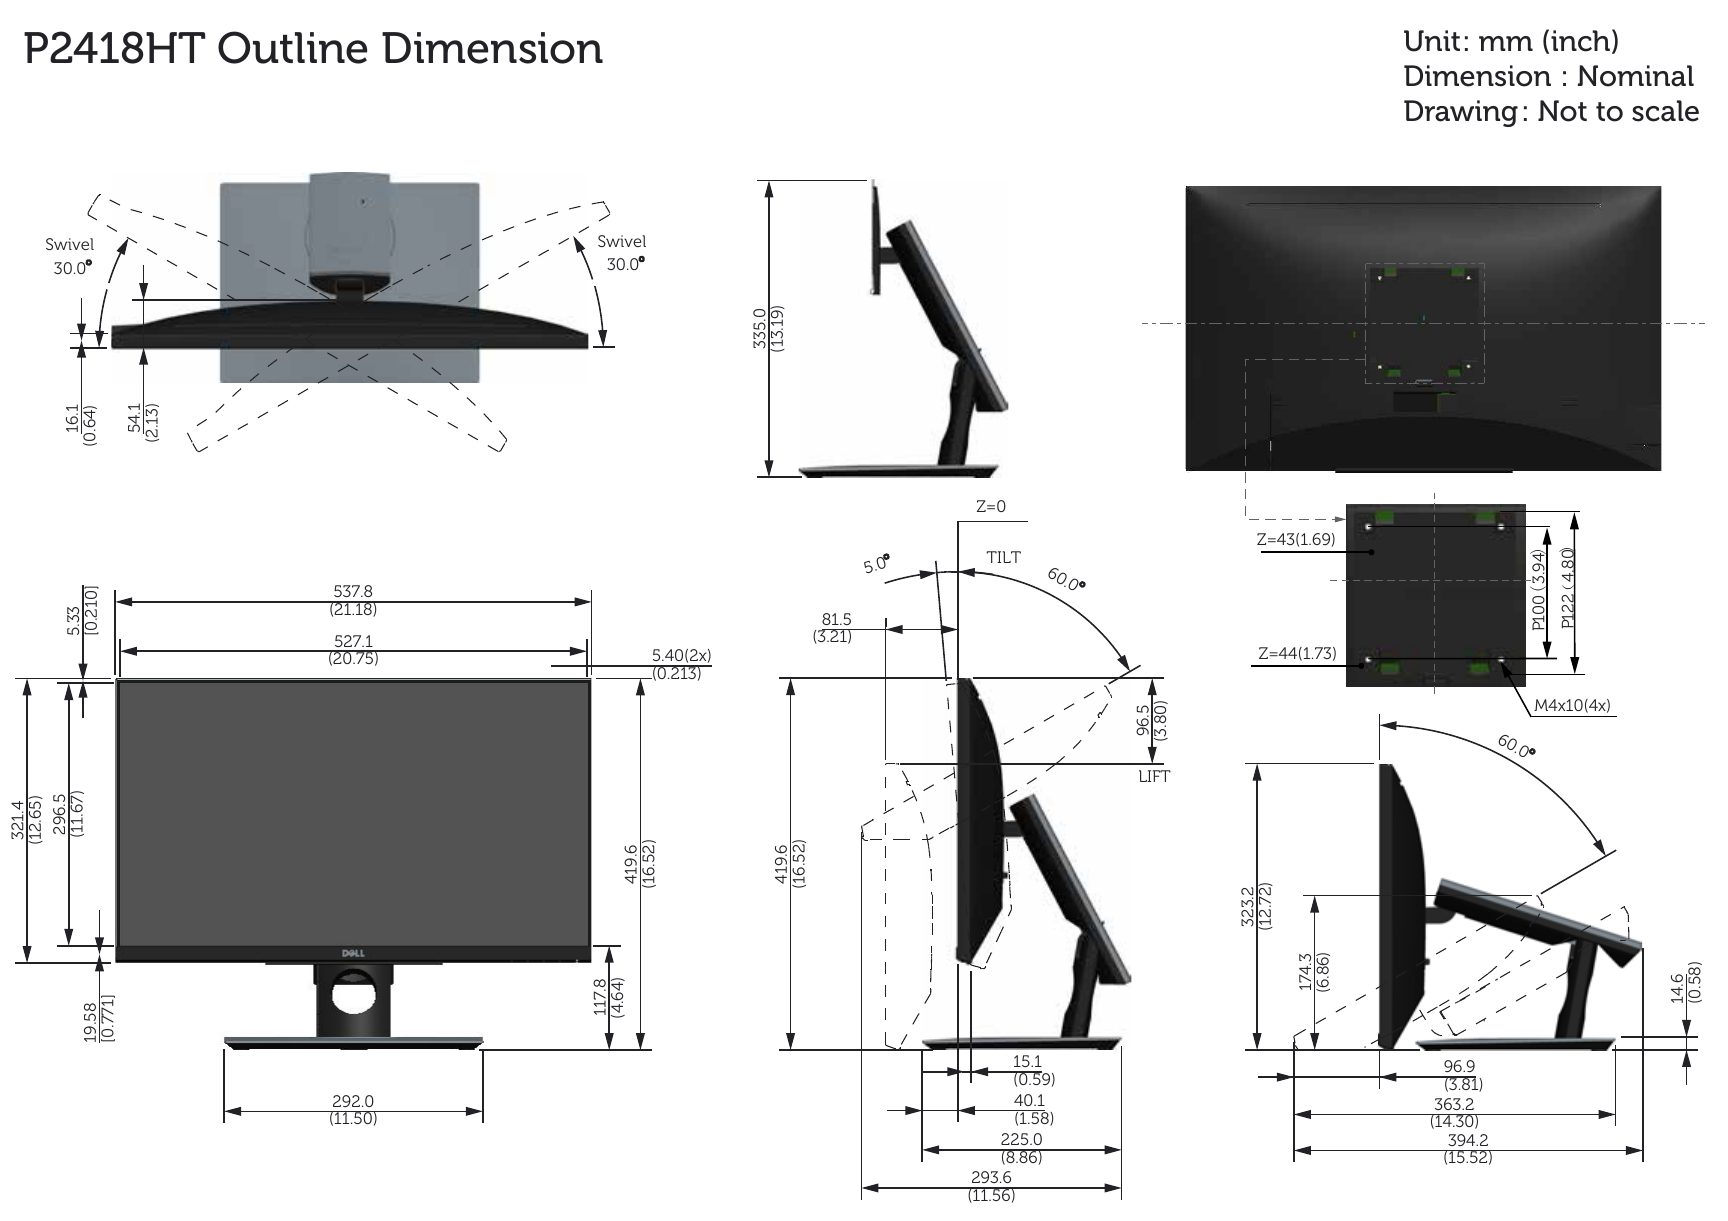 dell p2418ht monitor outline dimension user manual